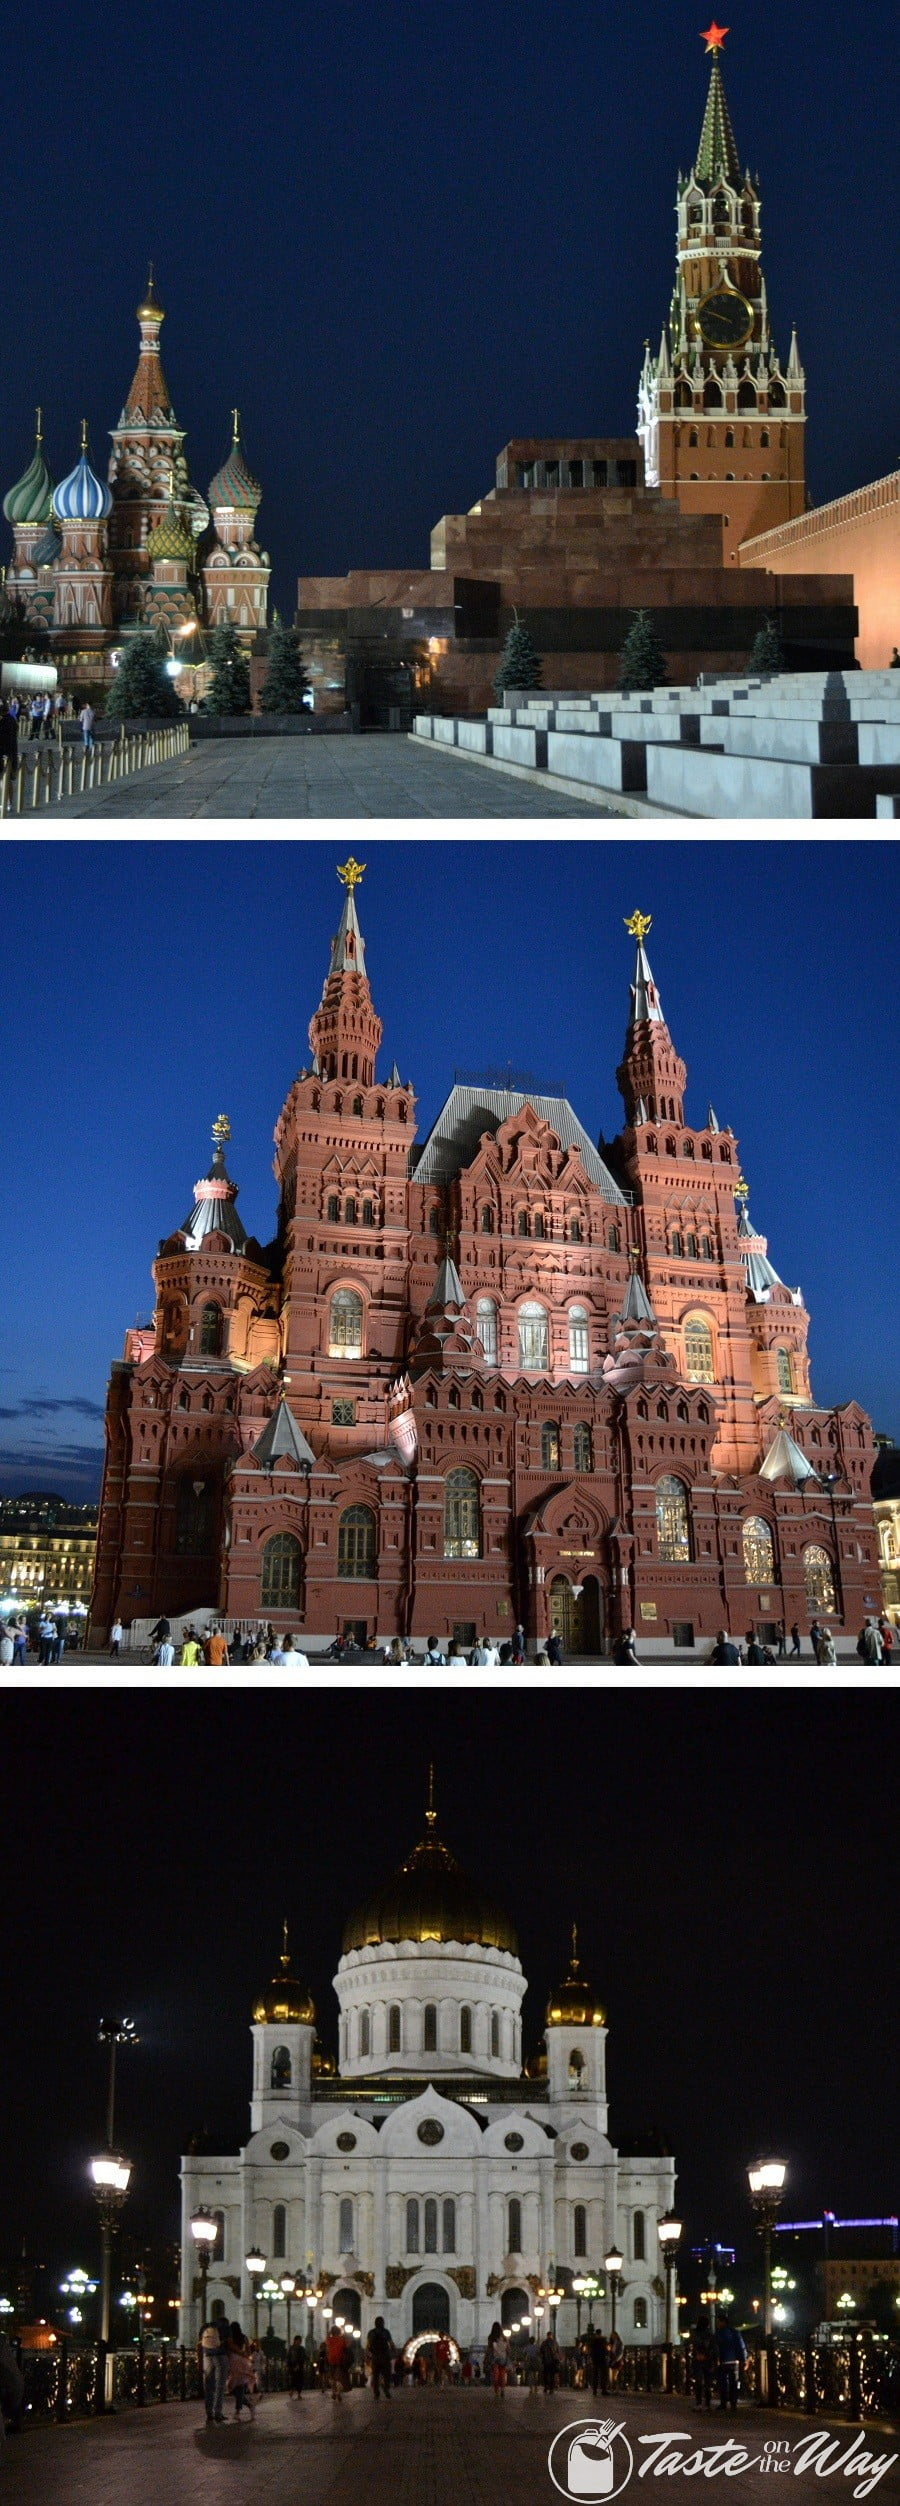 One of the top #thingstodo in #Moscow, #Russia is visiting the Red Square during the day and at night. Check out for more! #travel #photography @tasteontheway